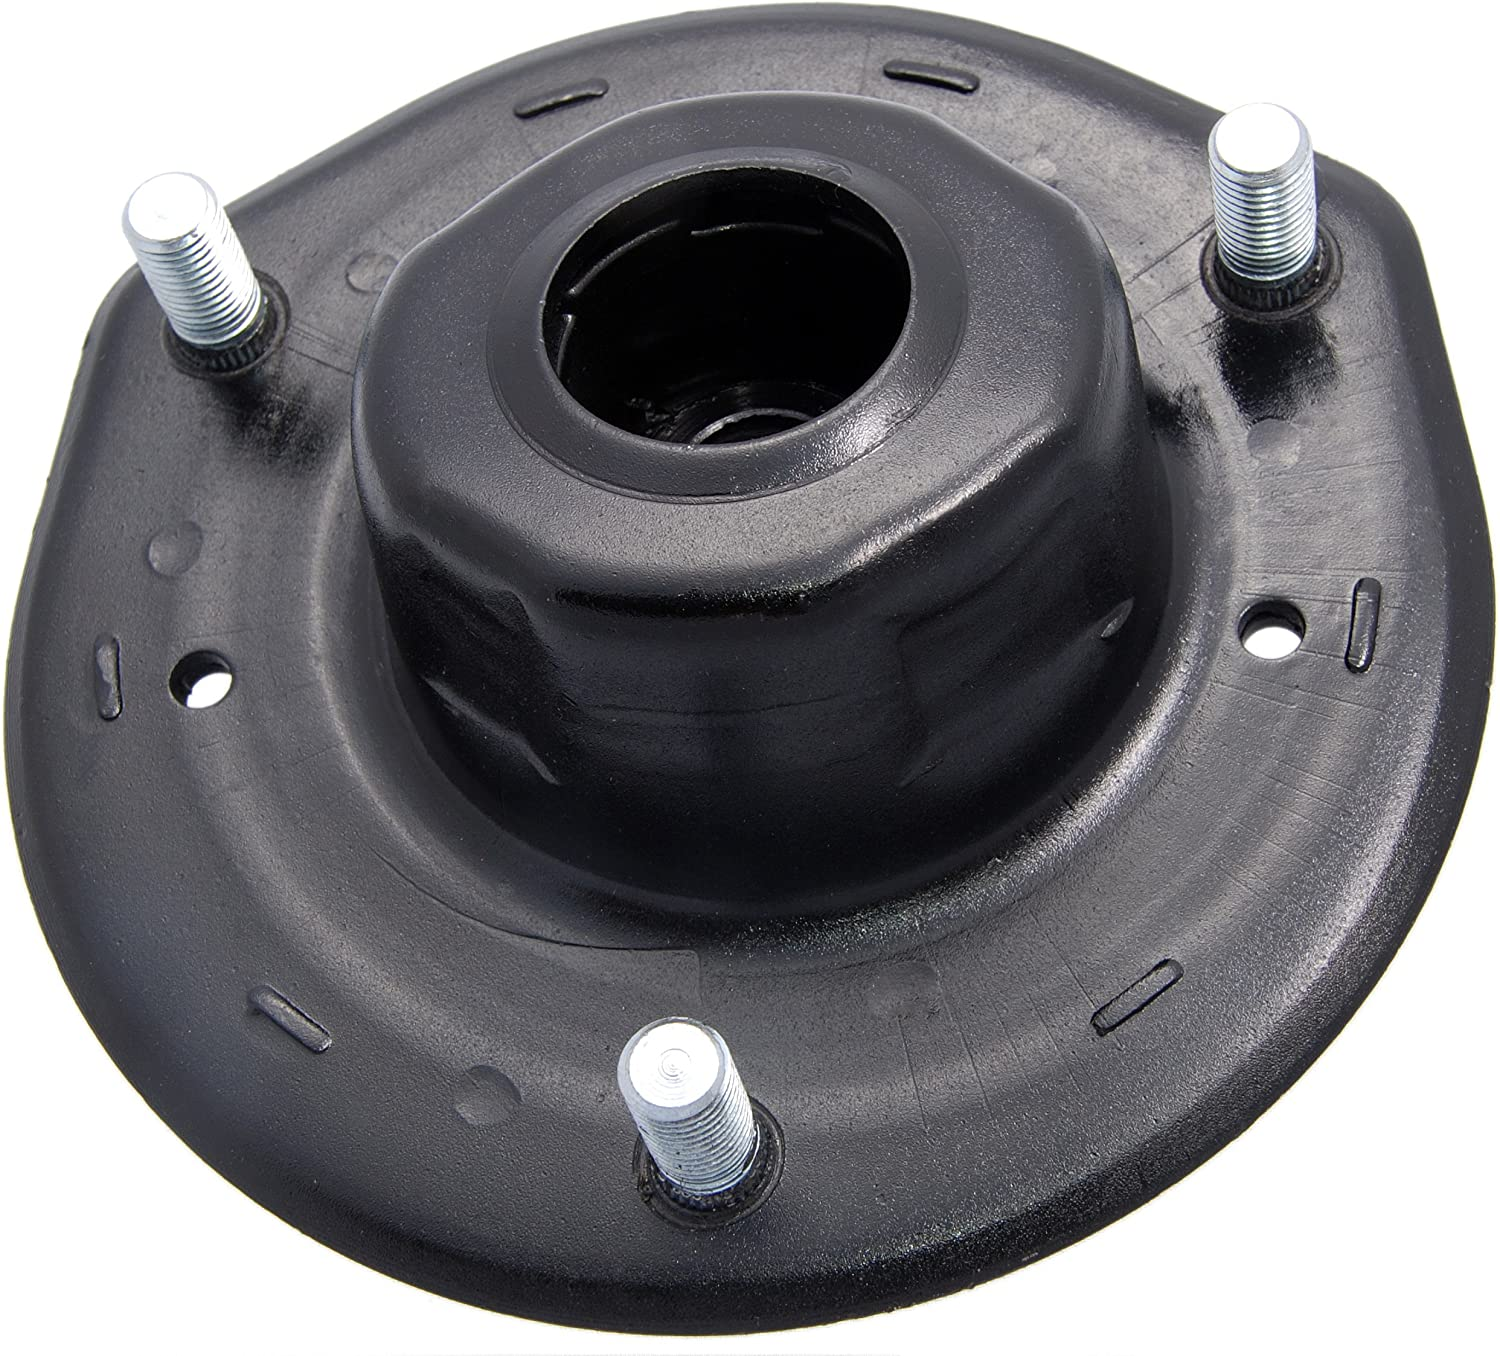 4860333040 - Right Front Shock Free Shipping Cheap Bargain Gift For Toyota Absorber Feb Oakland Mall Support